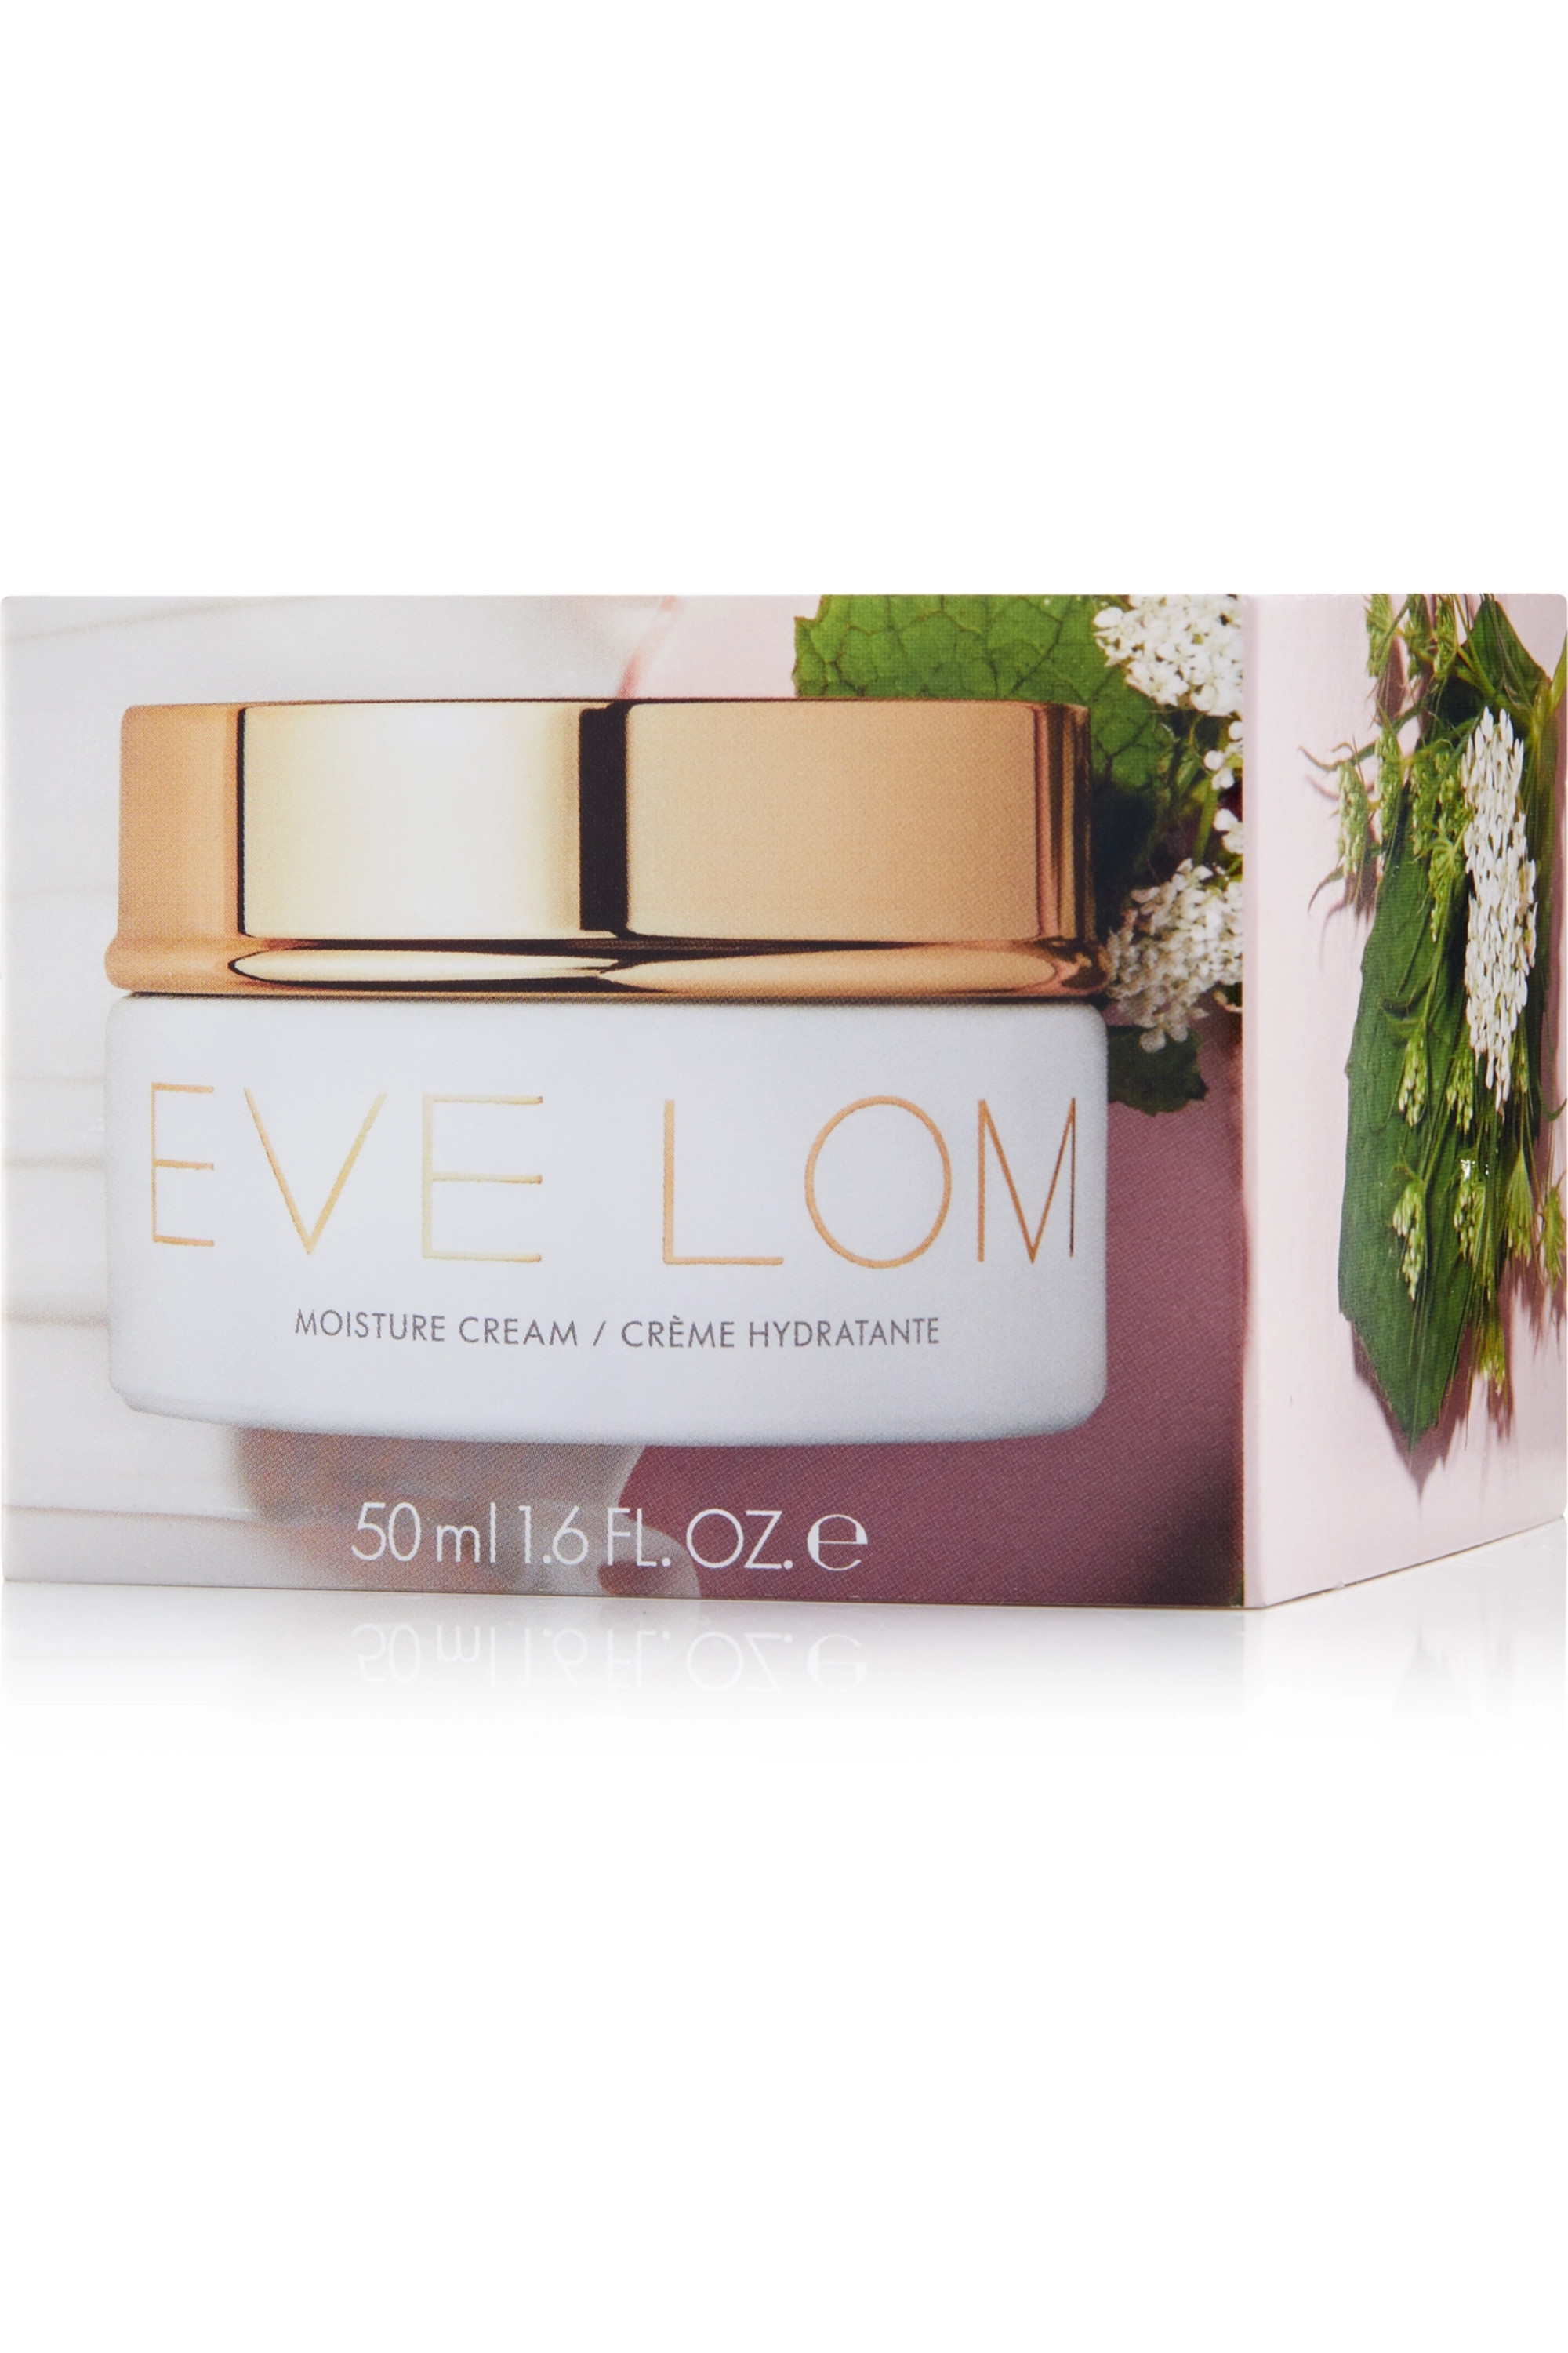 EVE LOM Moisture Cream, 50ml